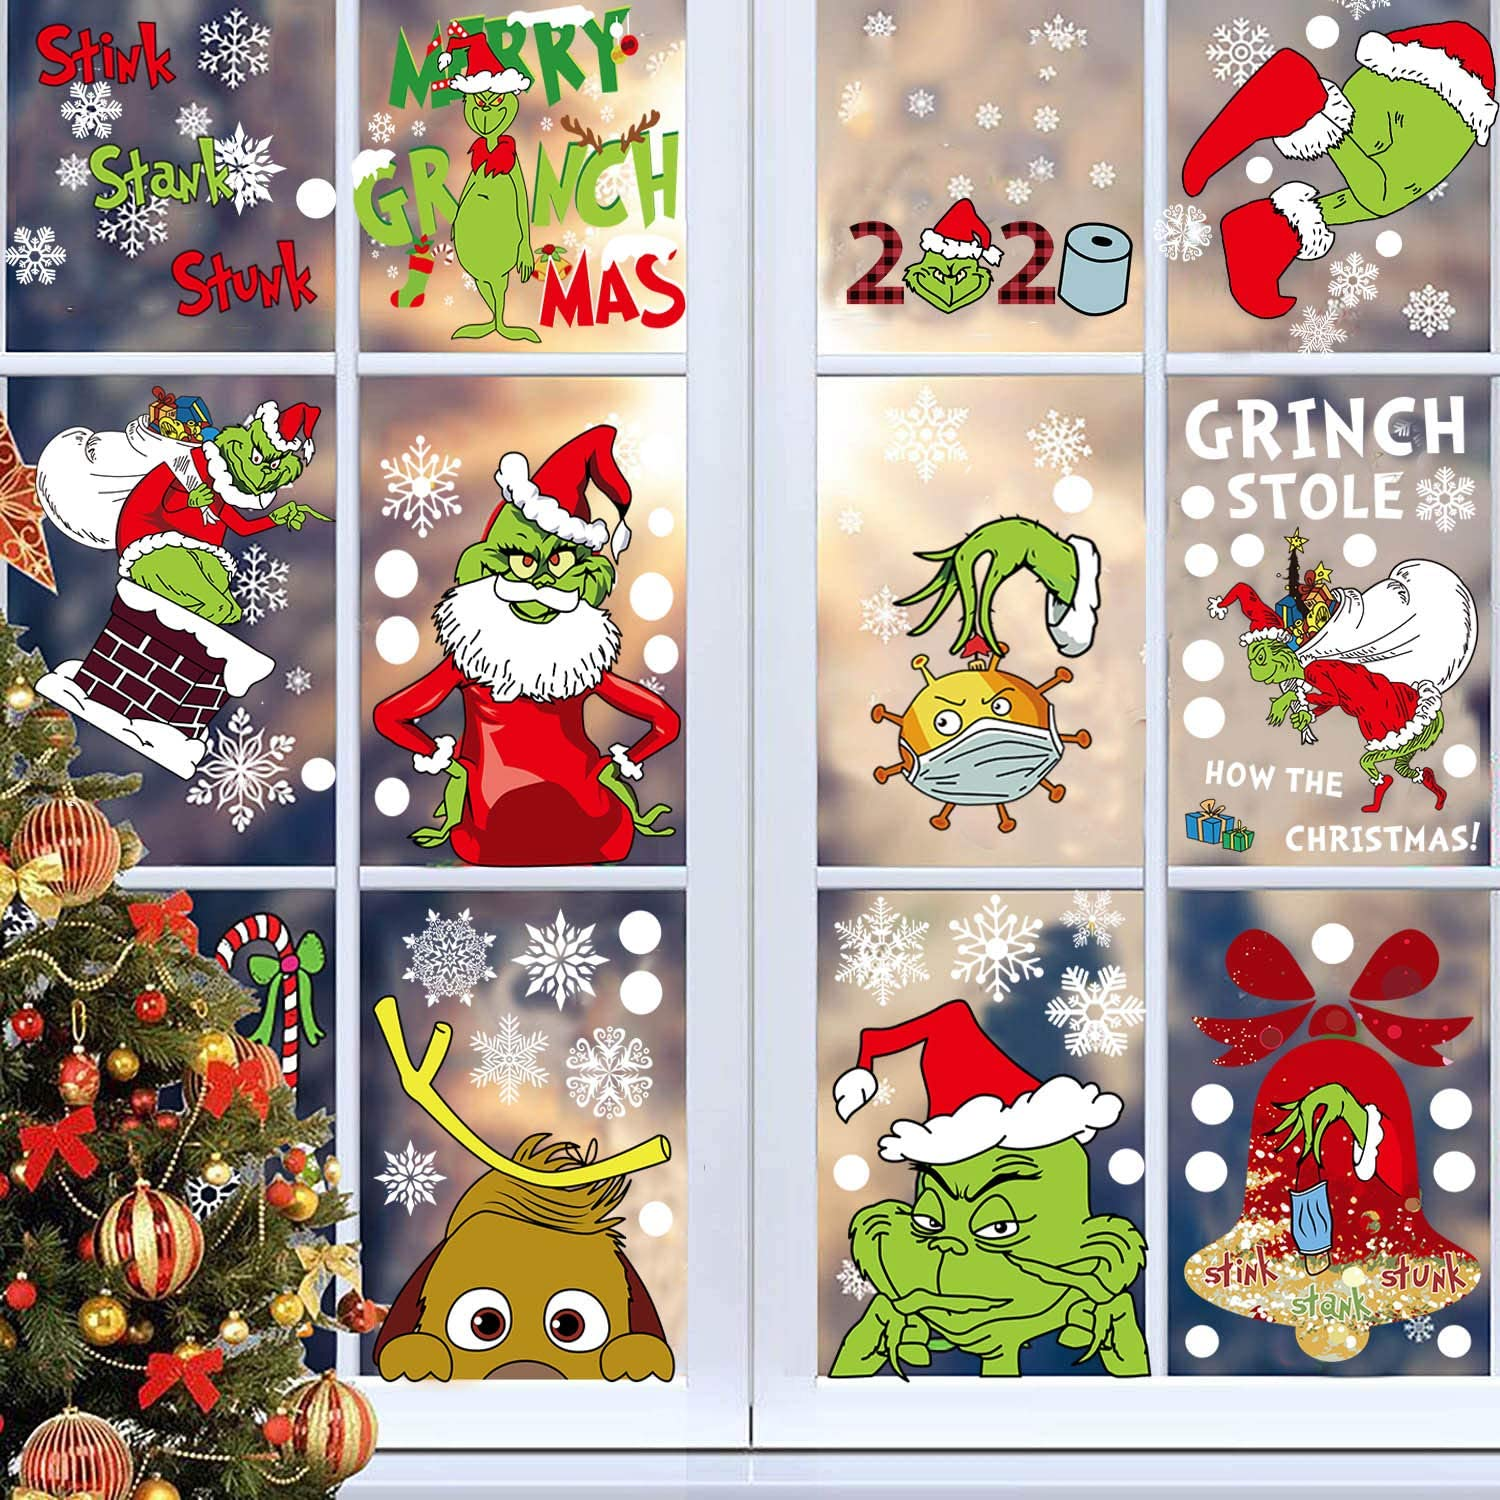 ZOISNT 9 Sheets Christmas Grinch Window Clings Grinch Christmas Decorations Window Sticker, Holiday Window Decals for Home School Office Grinch Party Supplies